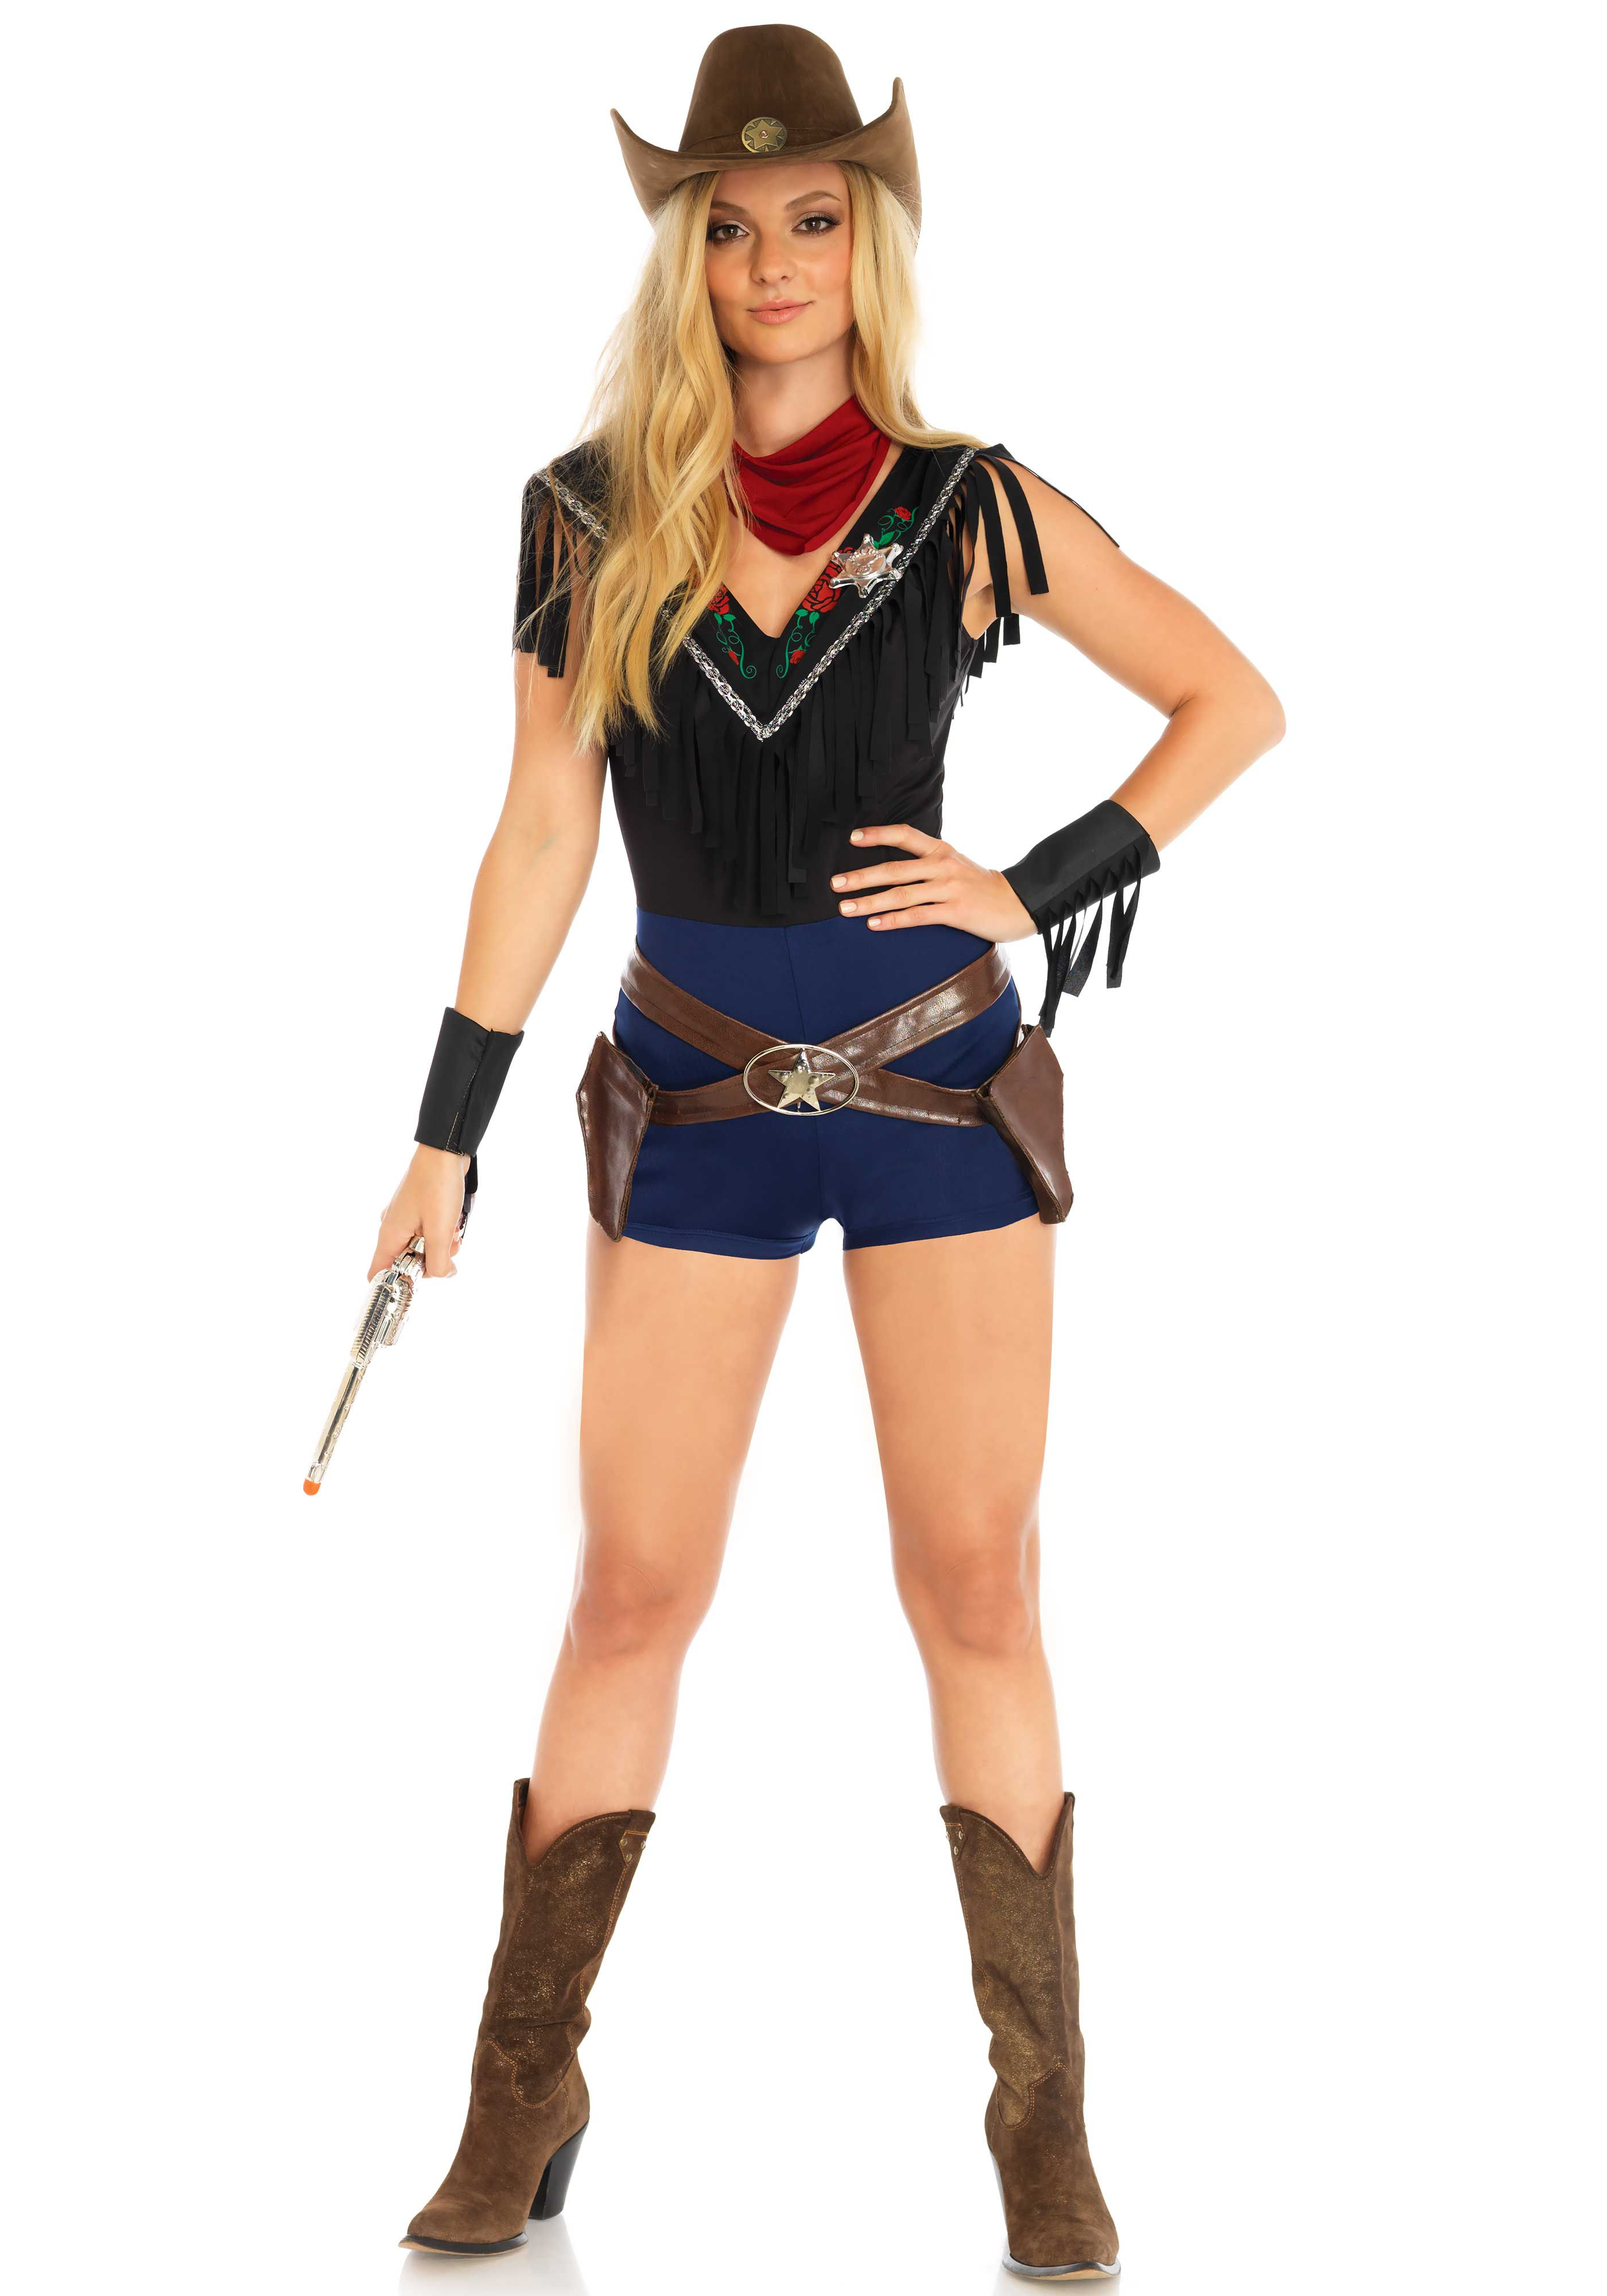 4 PC. Wild West Sheriff costume, includes romper with floral accents and fringe trim and badge, belt with holsters and star buckle, arm cuffs and neck piece. (toygun not included)